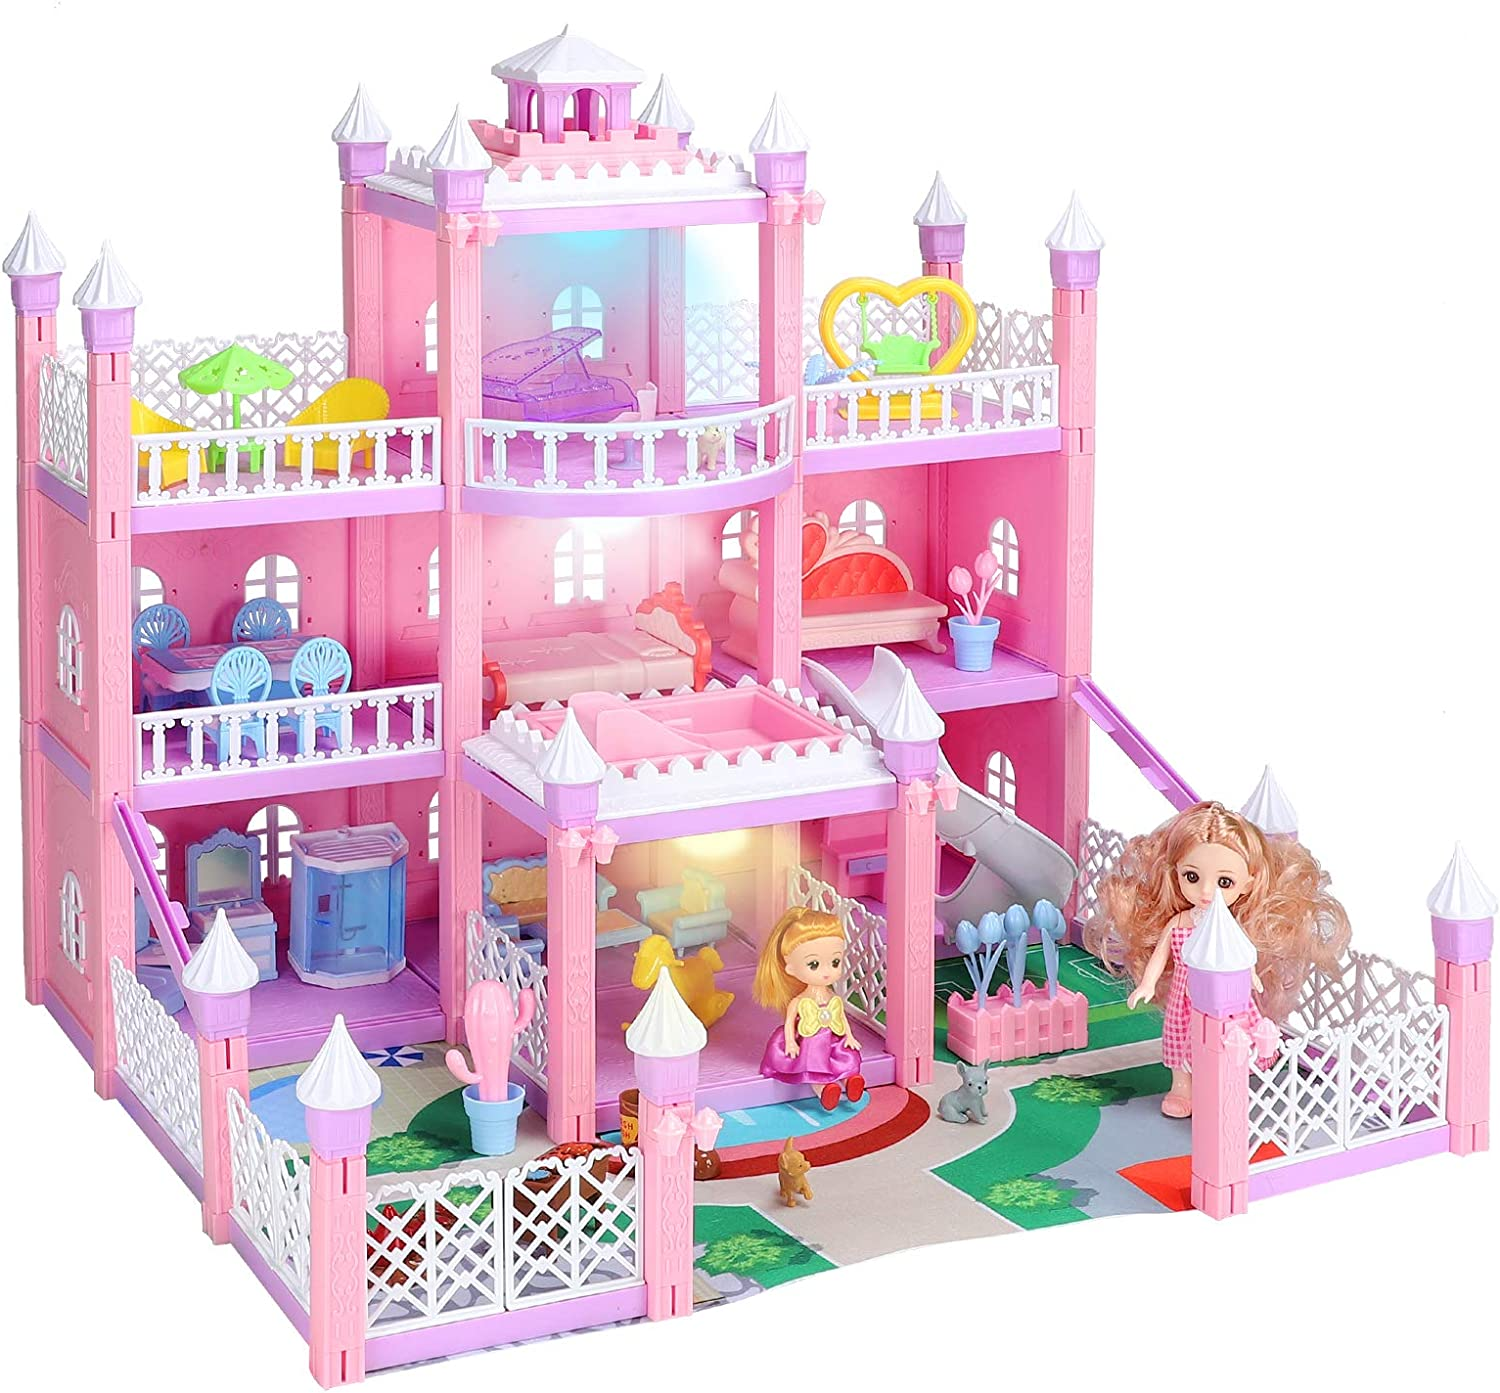 KAINSY Dollhouse, Dream House Kit with Led Luminous DIY Pretend Play Doll House Building Toys Playset Accessories with Furniture/Dolls/Pets/Slide for Toddlers Girls Best Gifts (11 Rooms & 3 Lights)